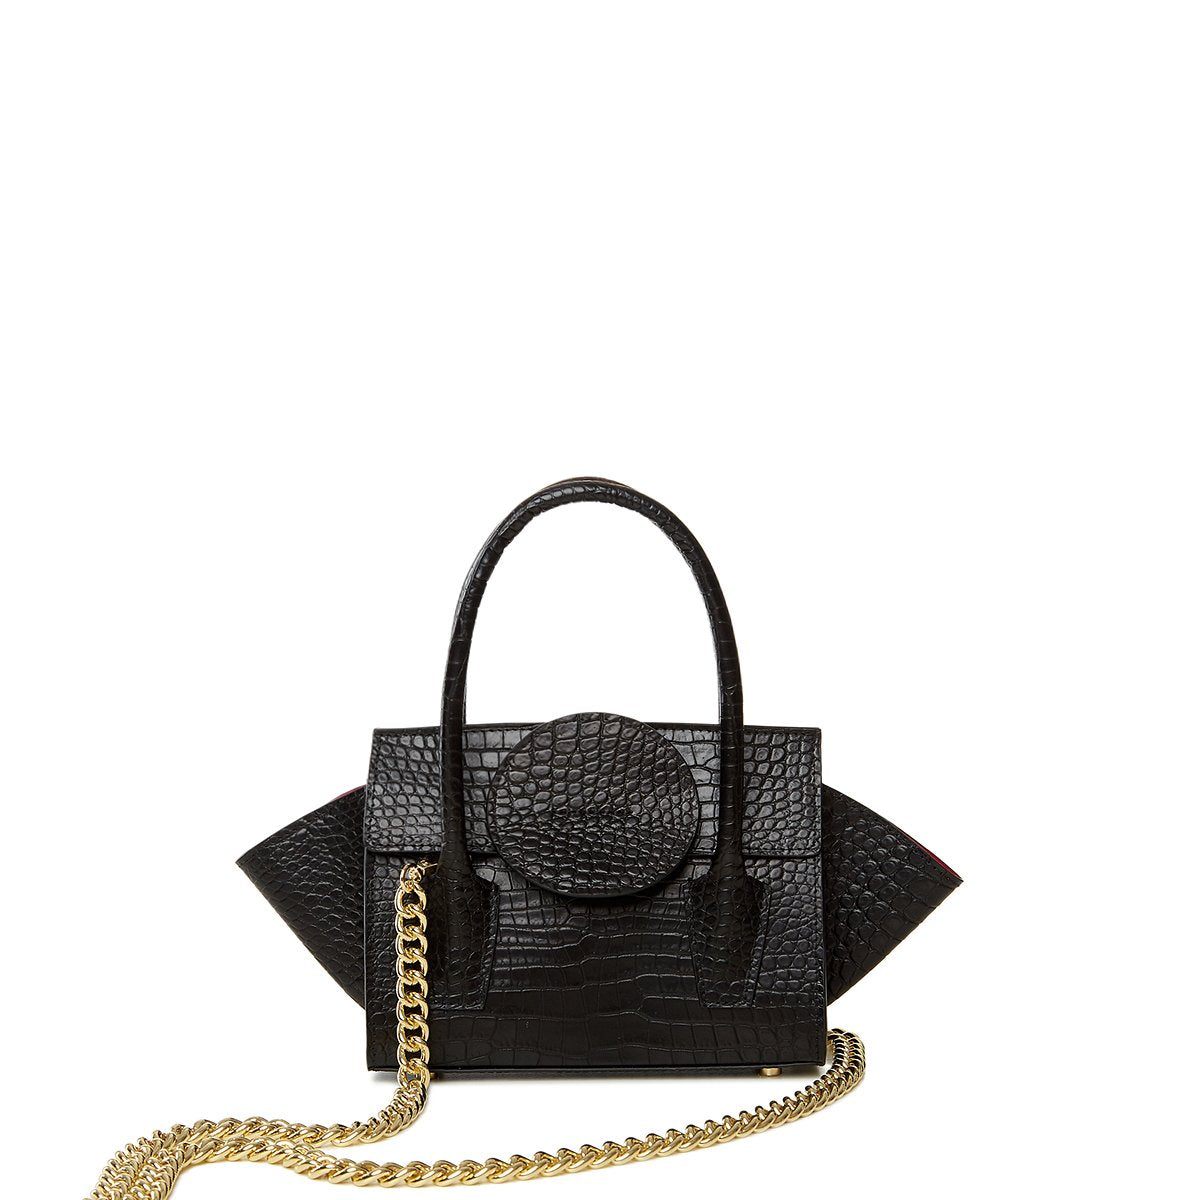 GRACIA MINI BAG BLACK